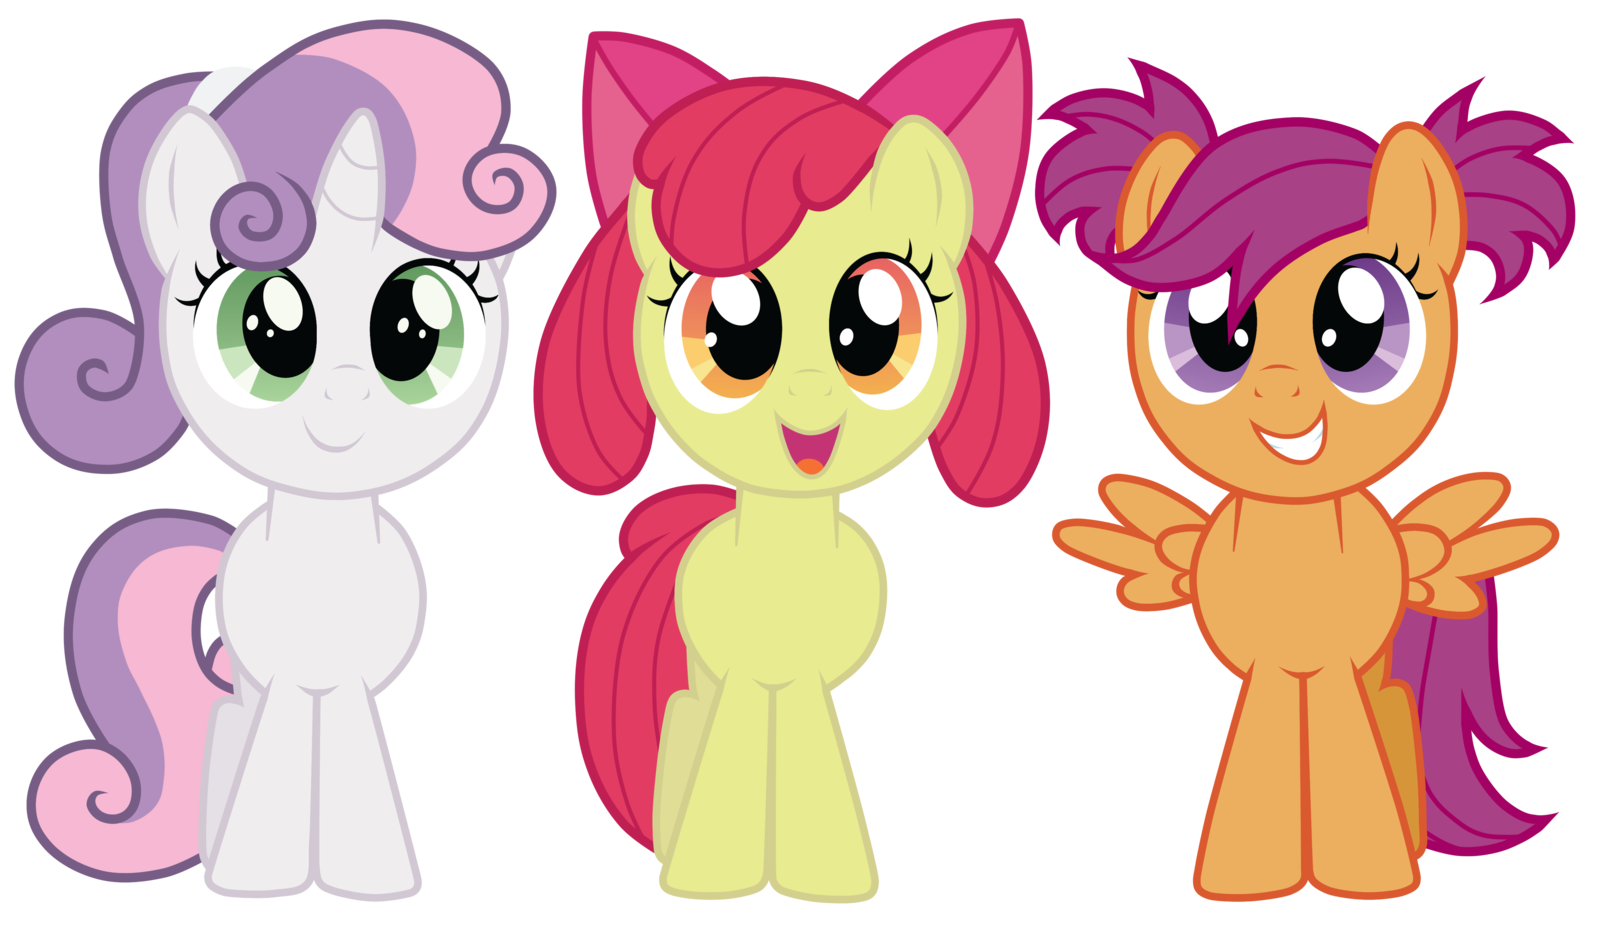 cmc with pigtails by jennieoo-d5x964r